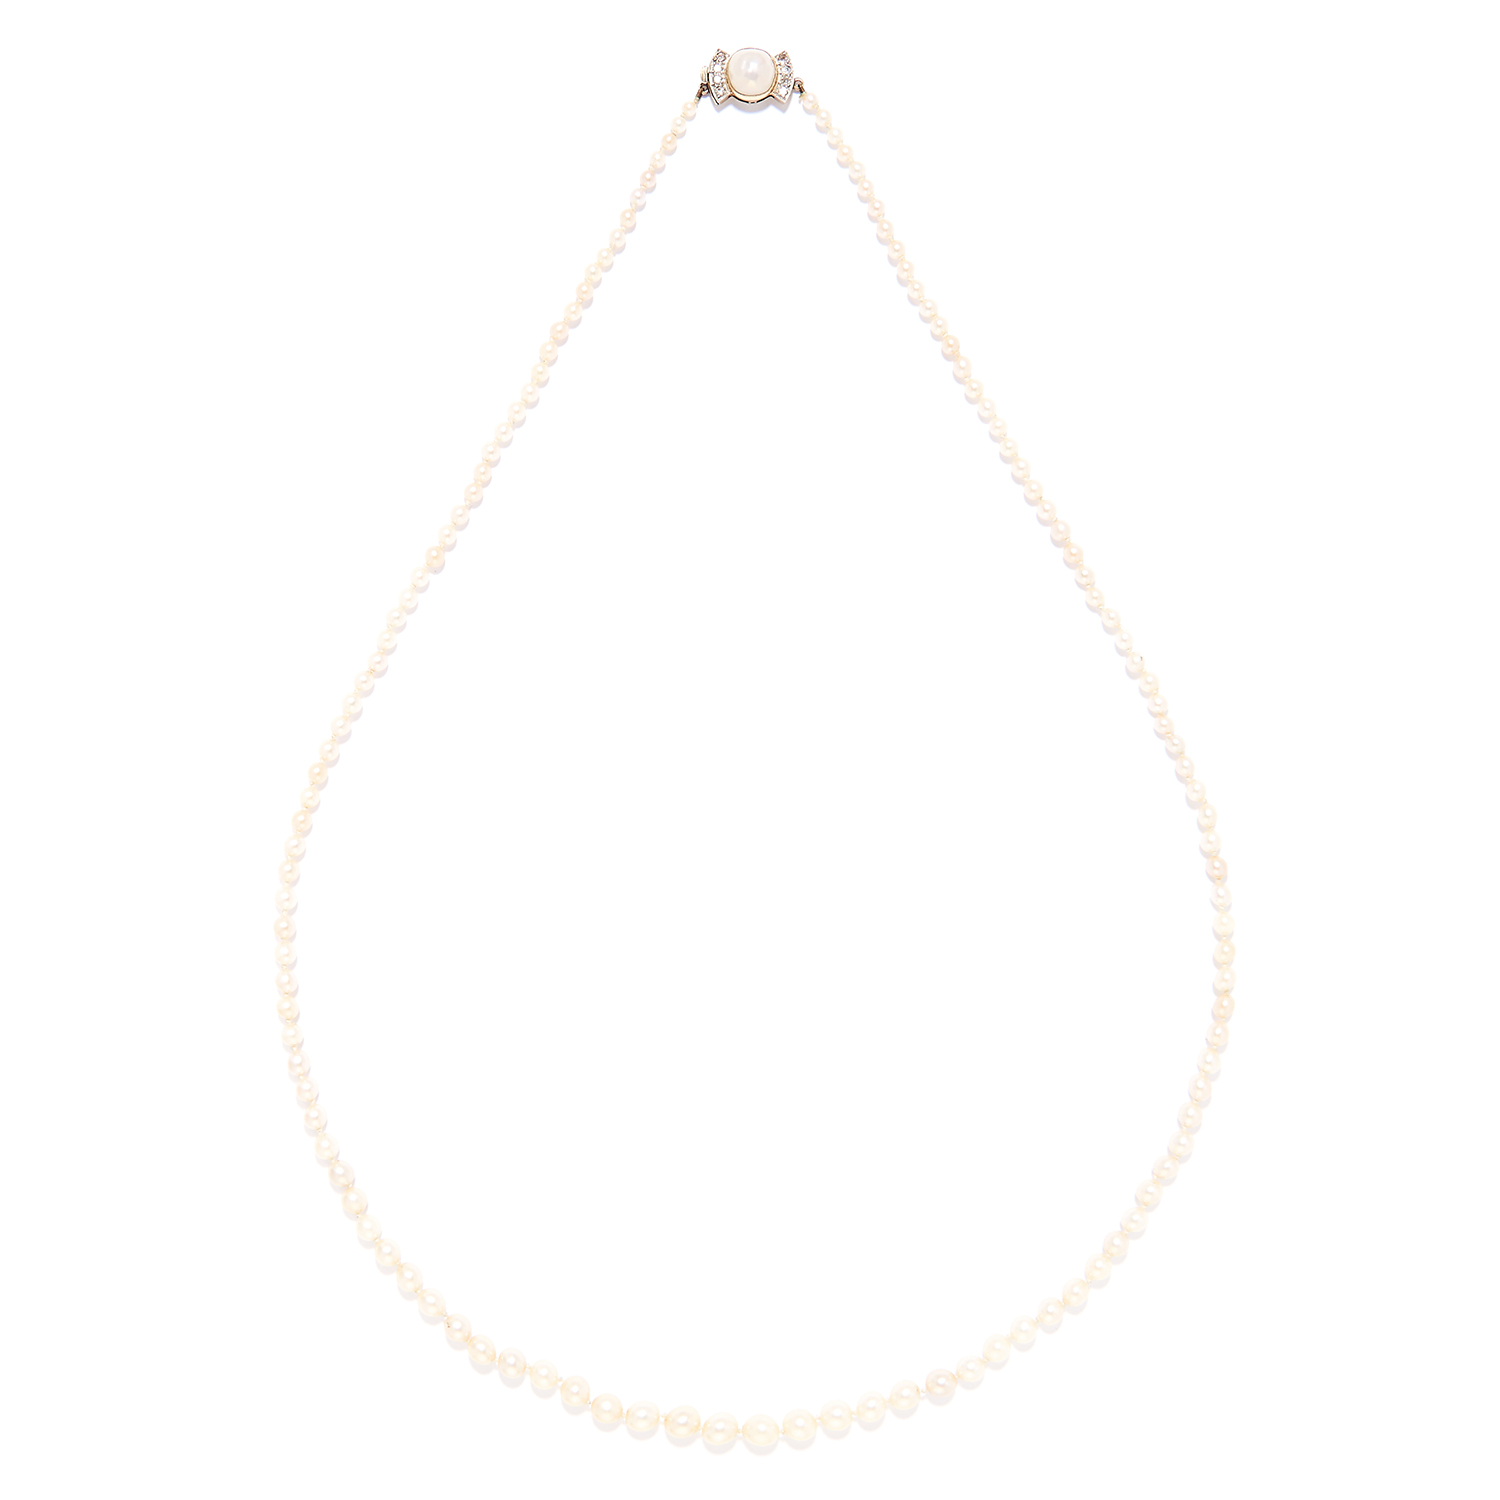 A PEARL AND DIAMOND NECKLACE in yellow gold, comprising of a single row of 127 pearls,with pearl and